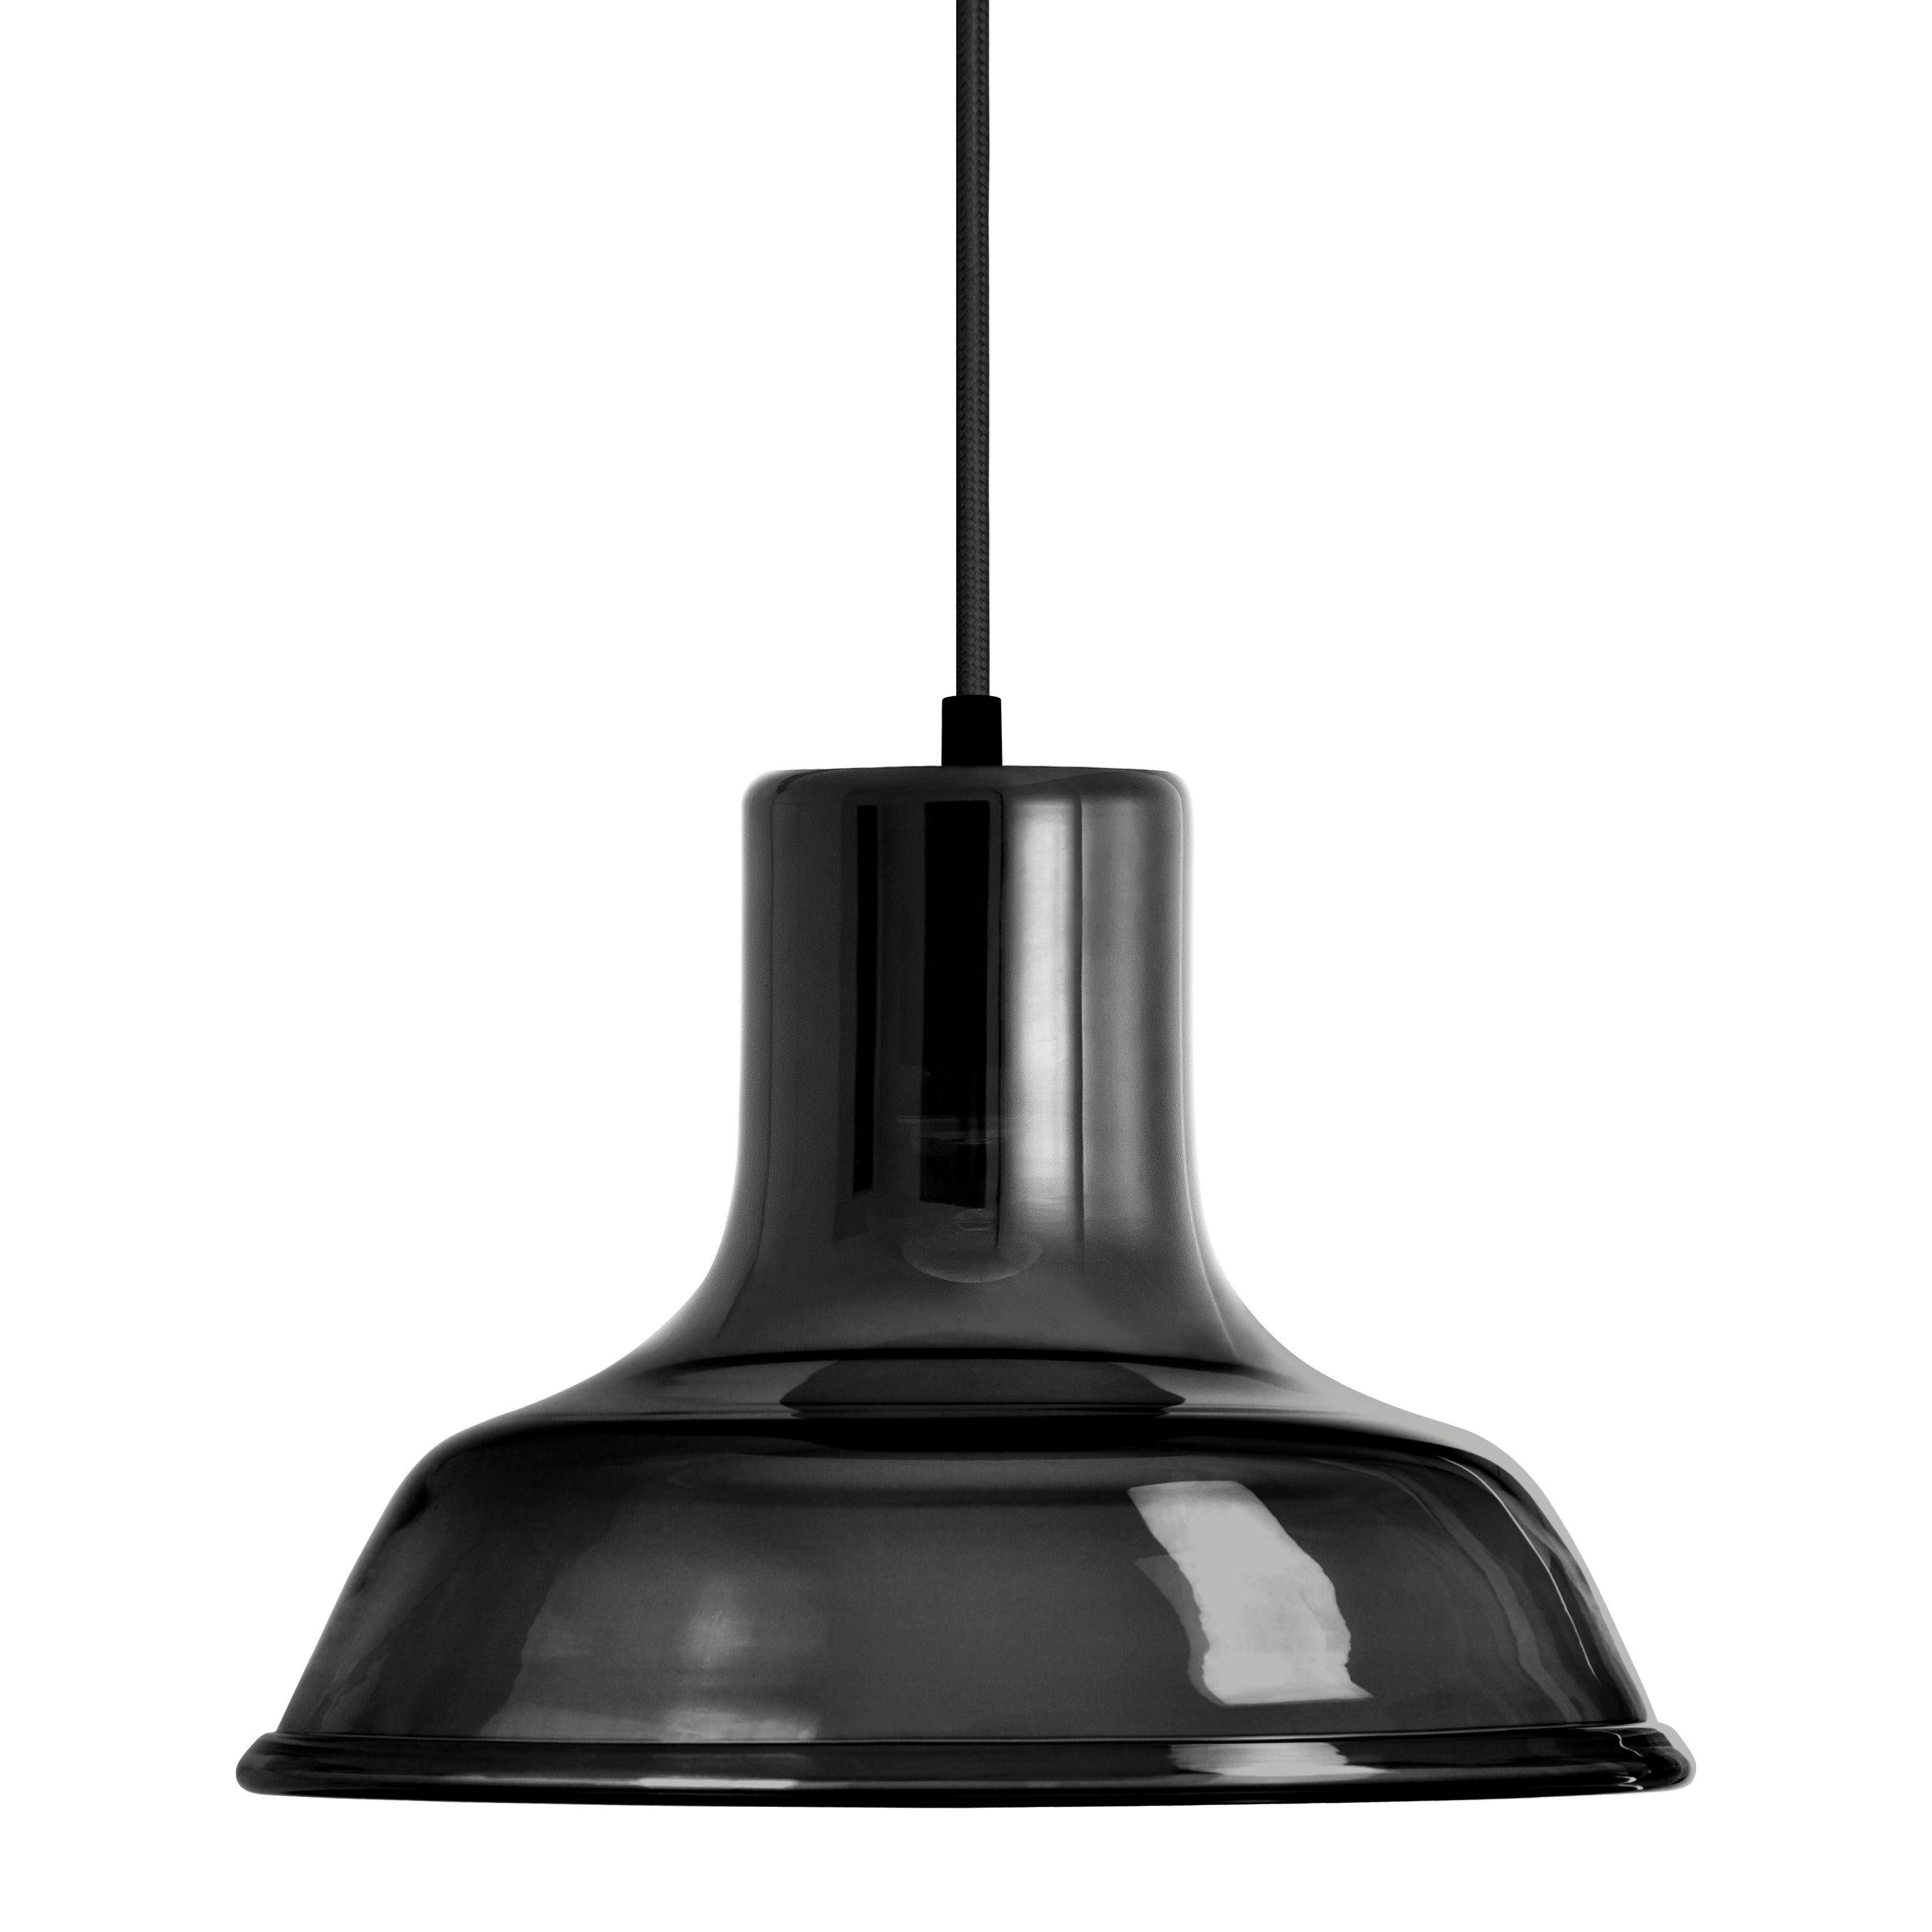 Mineheart Factory glass pendant light in noir by Young & Battaglia from Warehouse Home